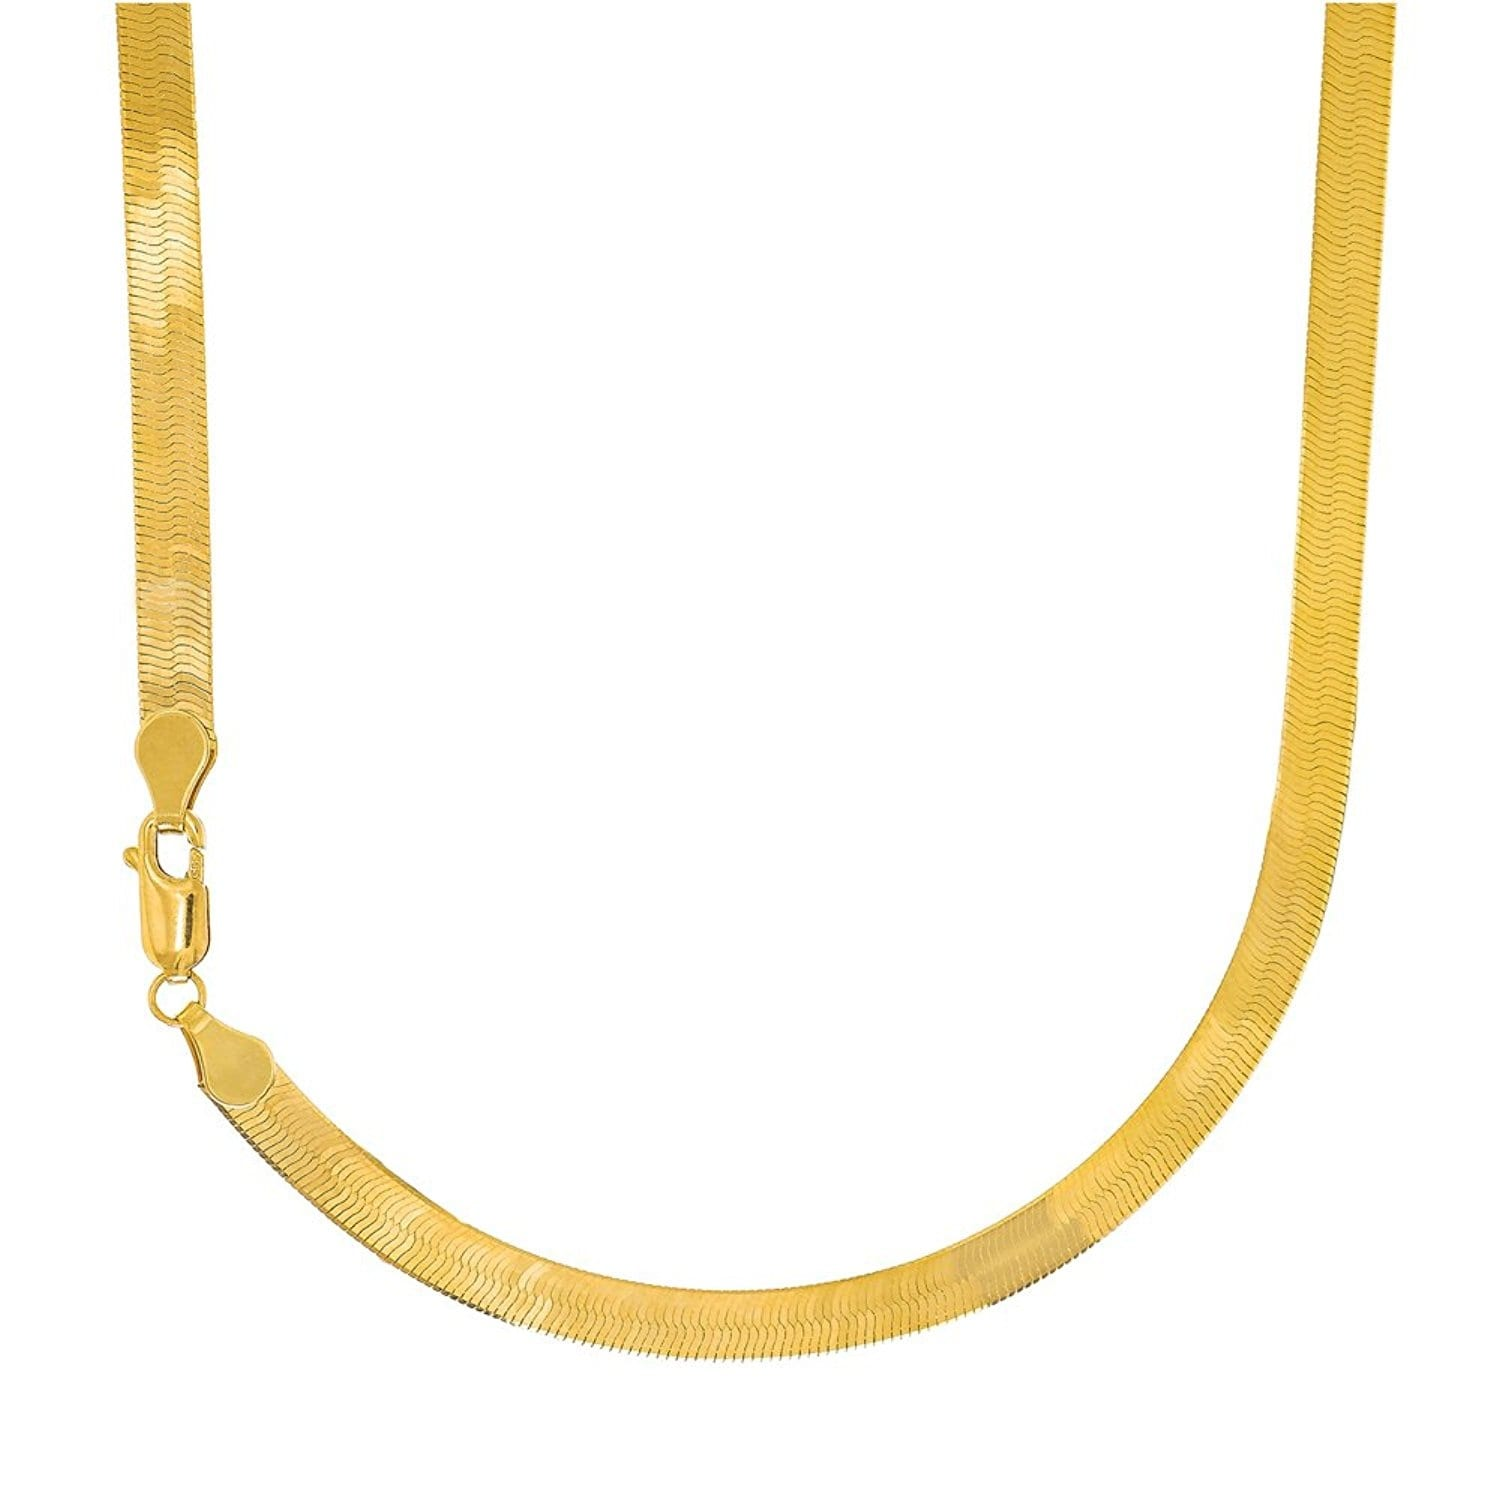 6a0dfb2c80bac Herringbone Necklaces | Find Great Jewelry Deals Shopping at Overstock